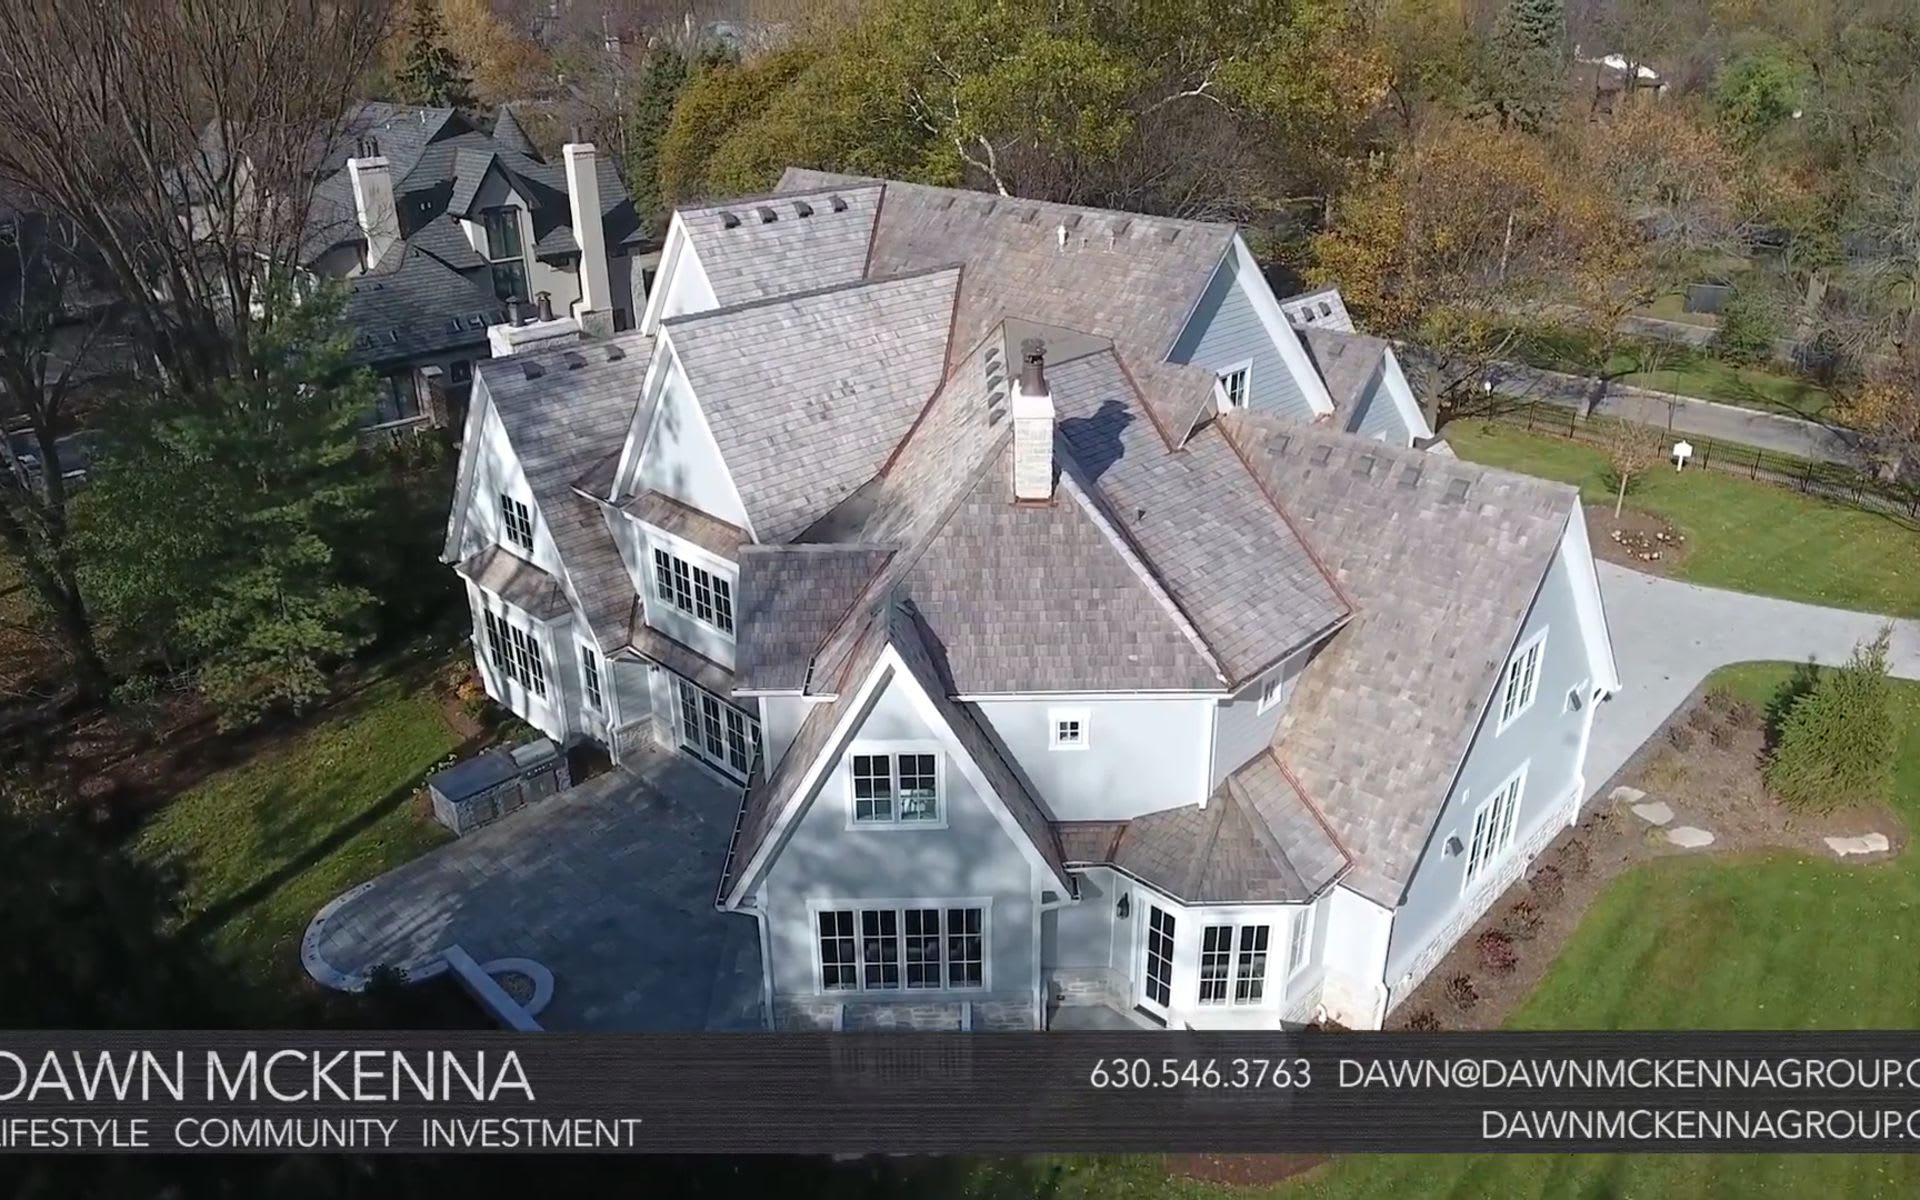 510 WOODLAND STREET, HINSDALE, IL DAWN MCKENNA GROUP video preview